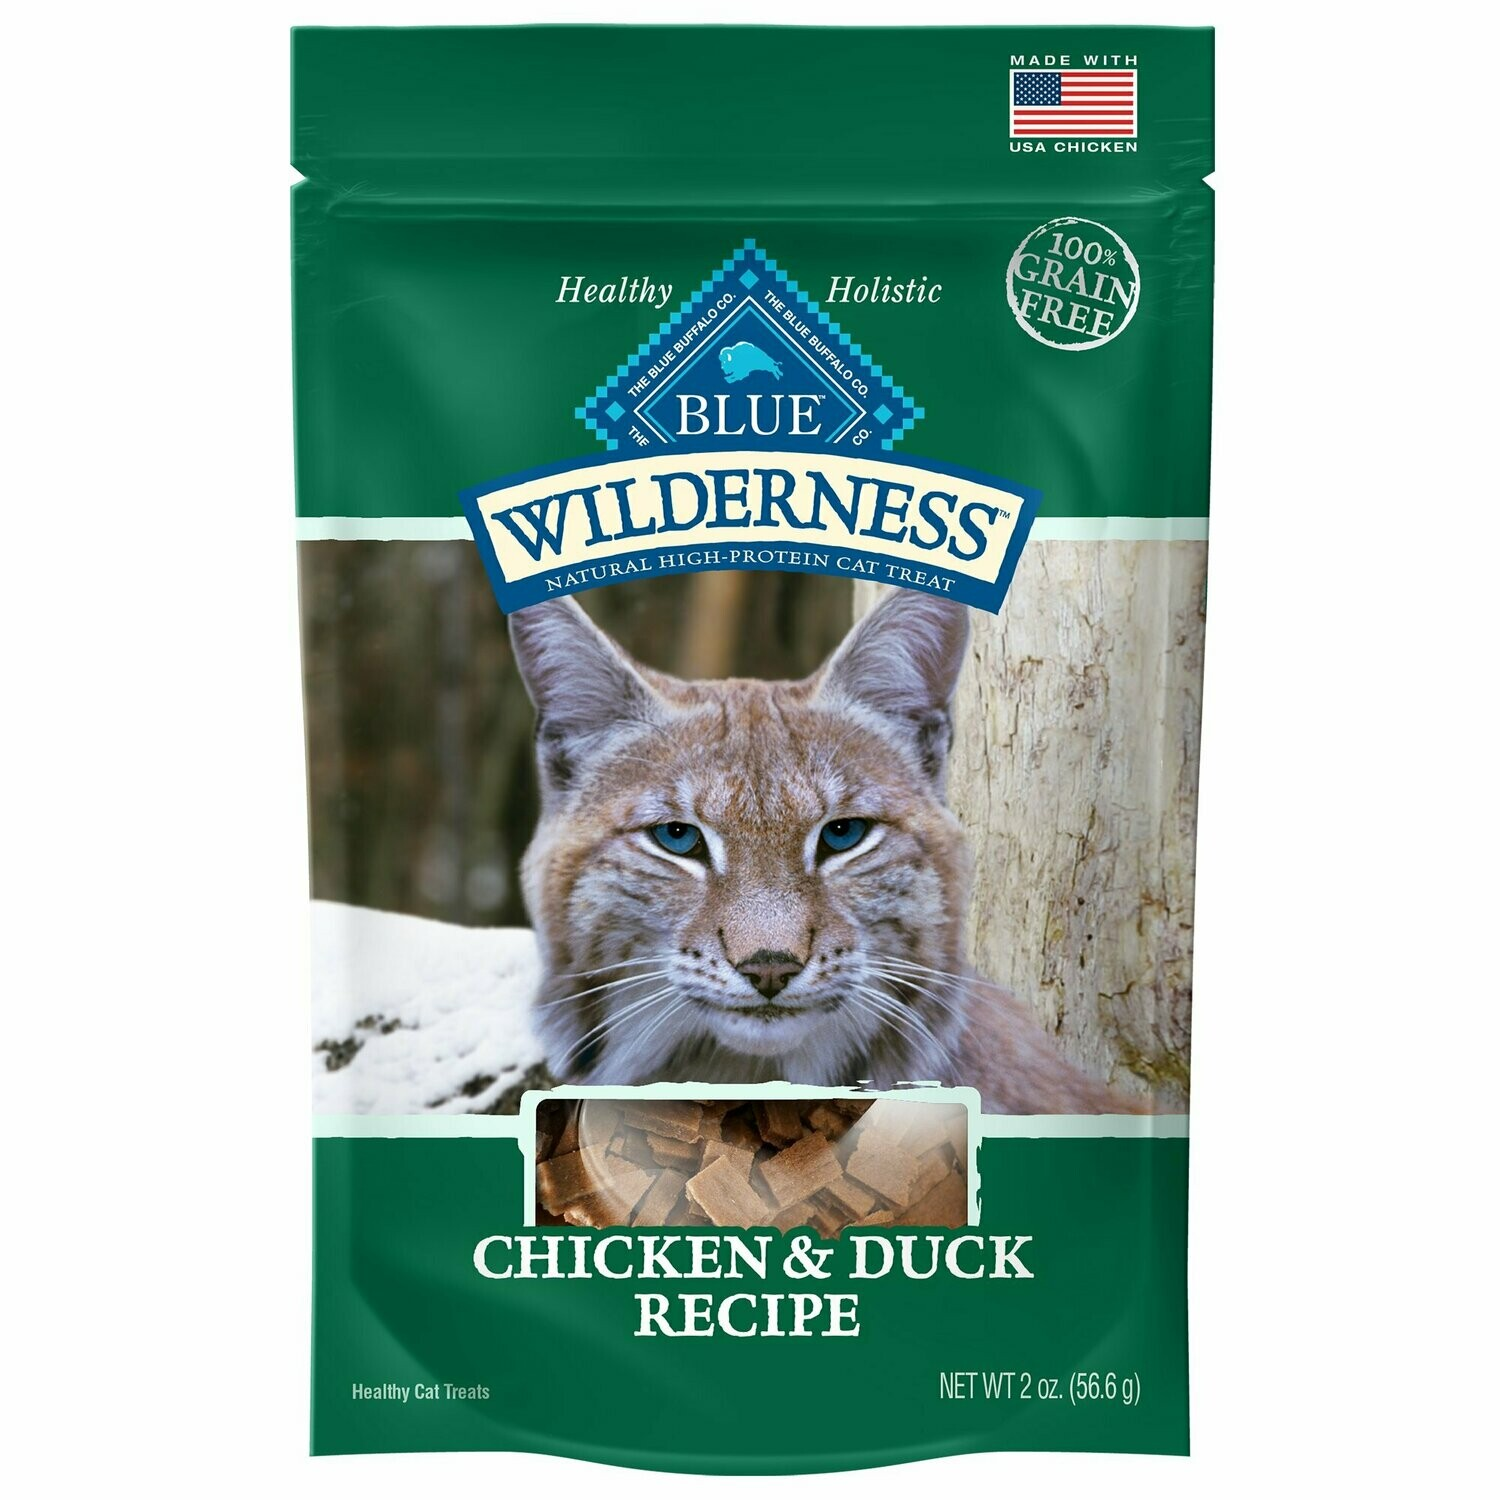 Blue Buffalo Wilderness Chicken & Duck Grain Free Cat Treats, 2 oz (1/20) (T.A1)